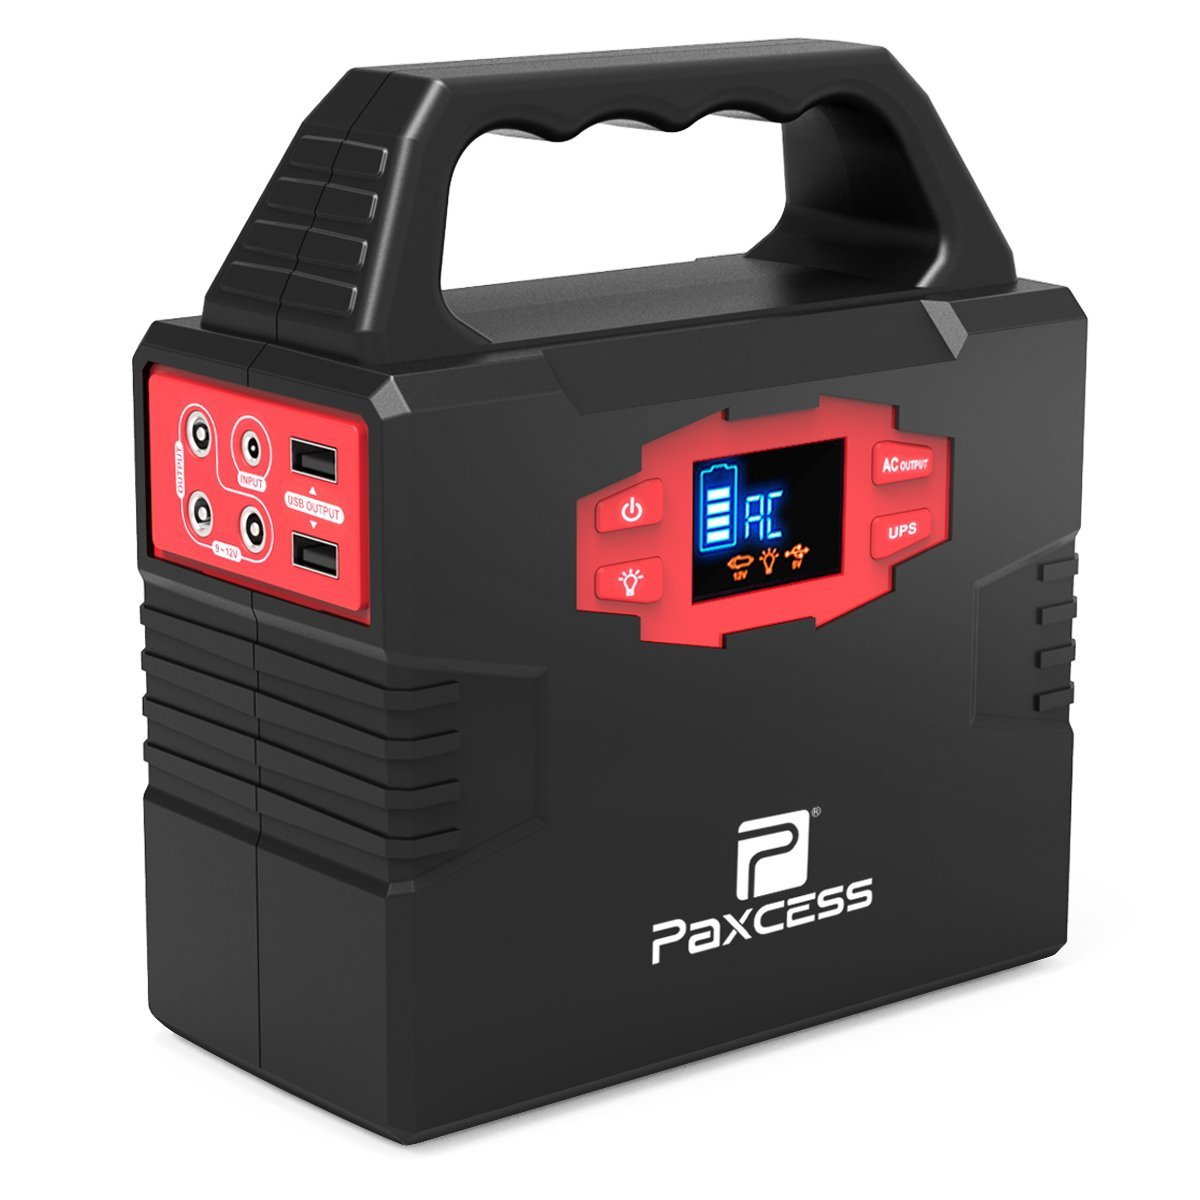 100-Watt Portable Generator Power Station, 40800mAh